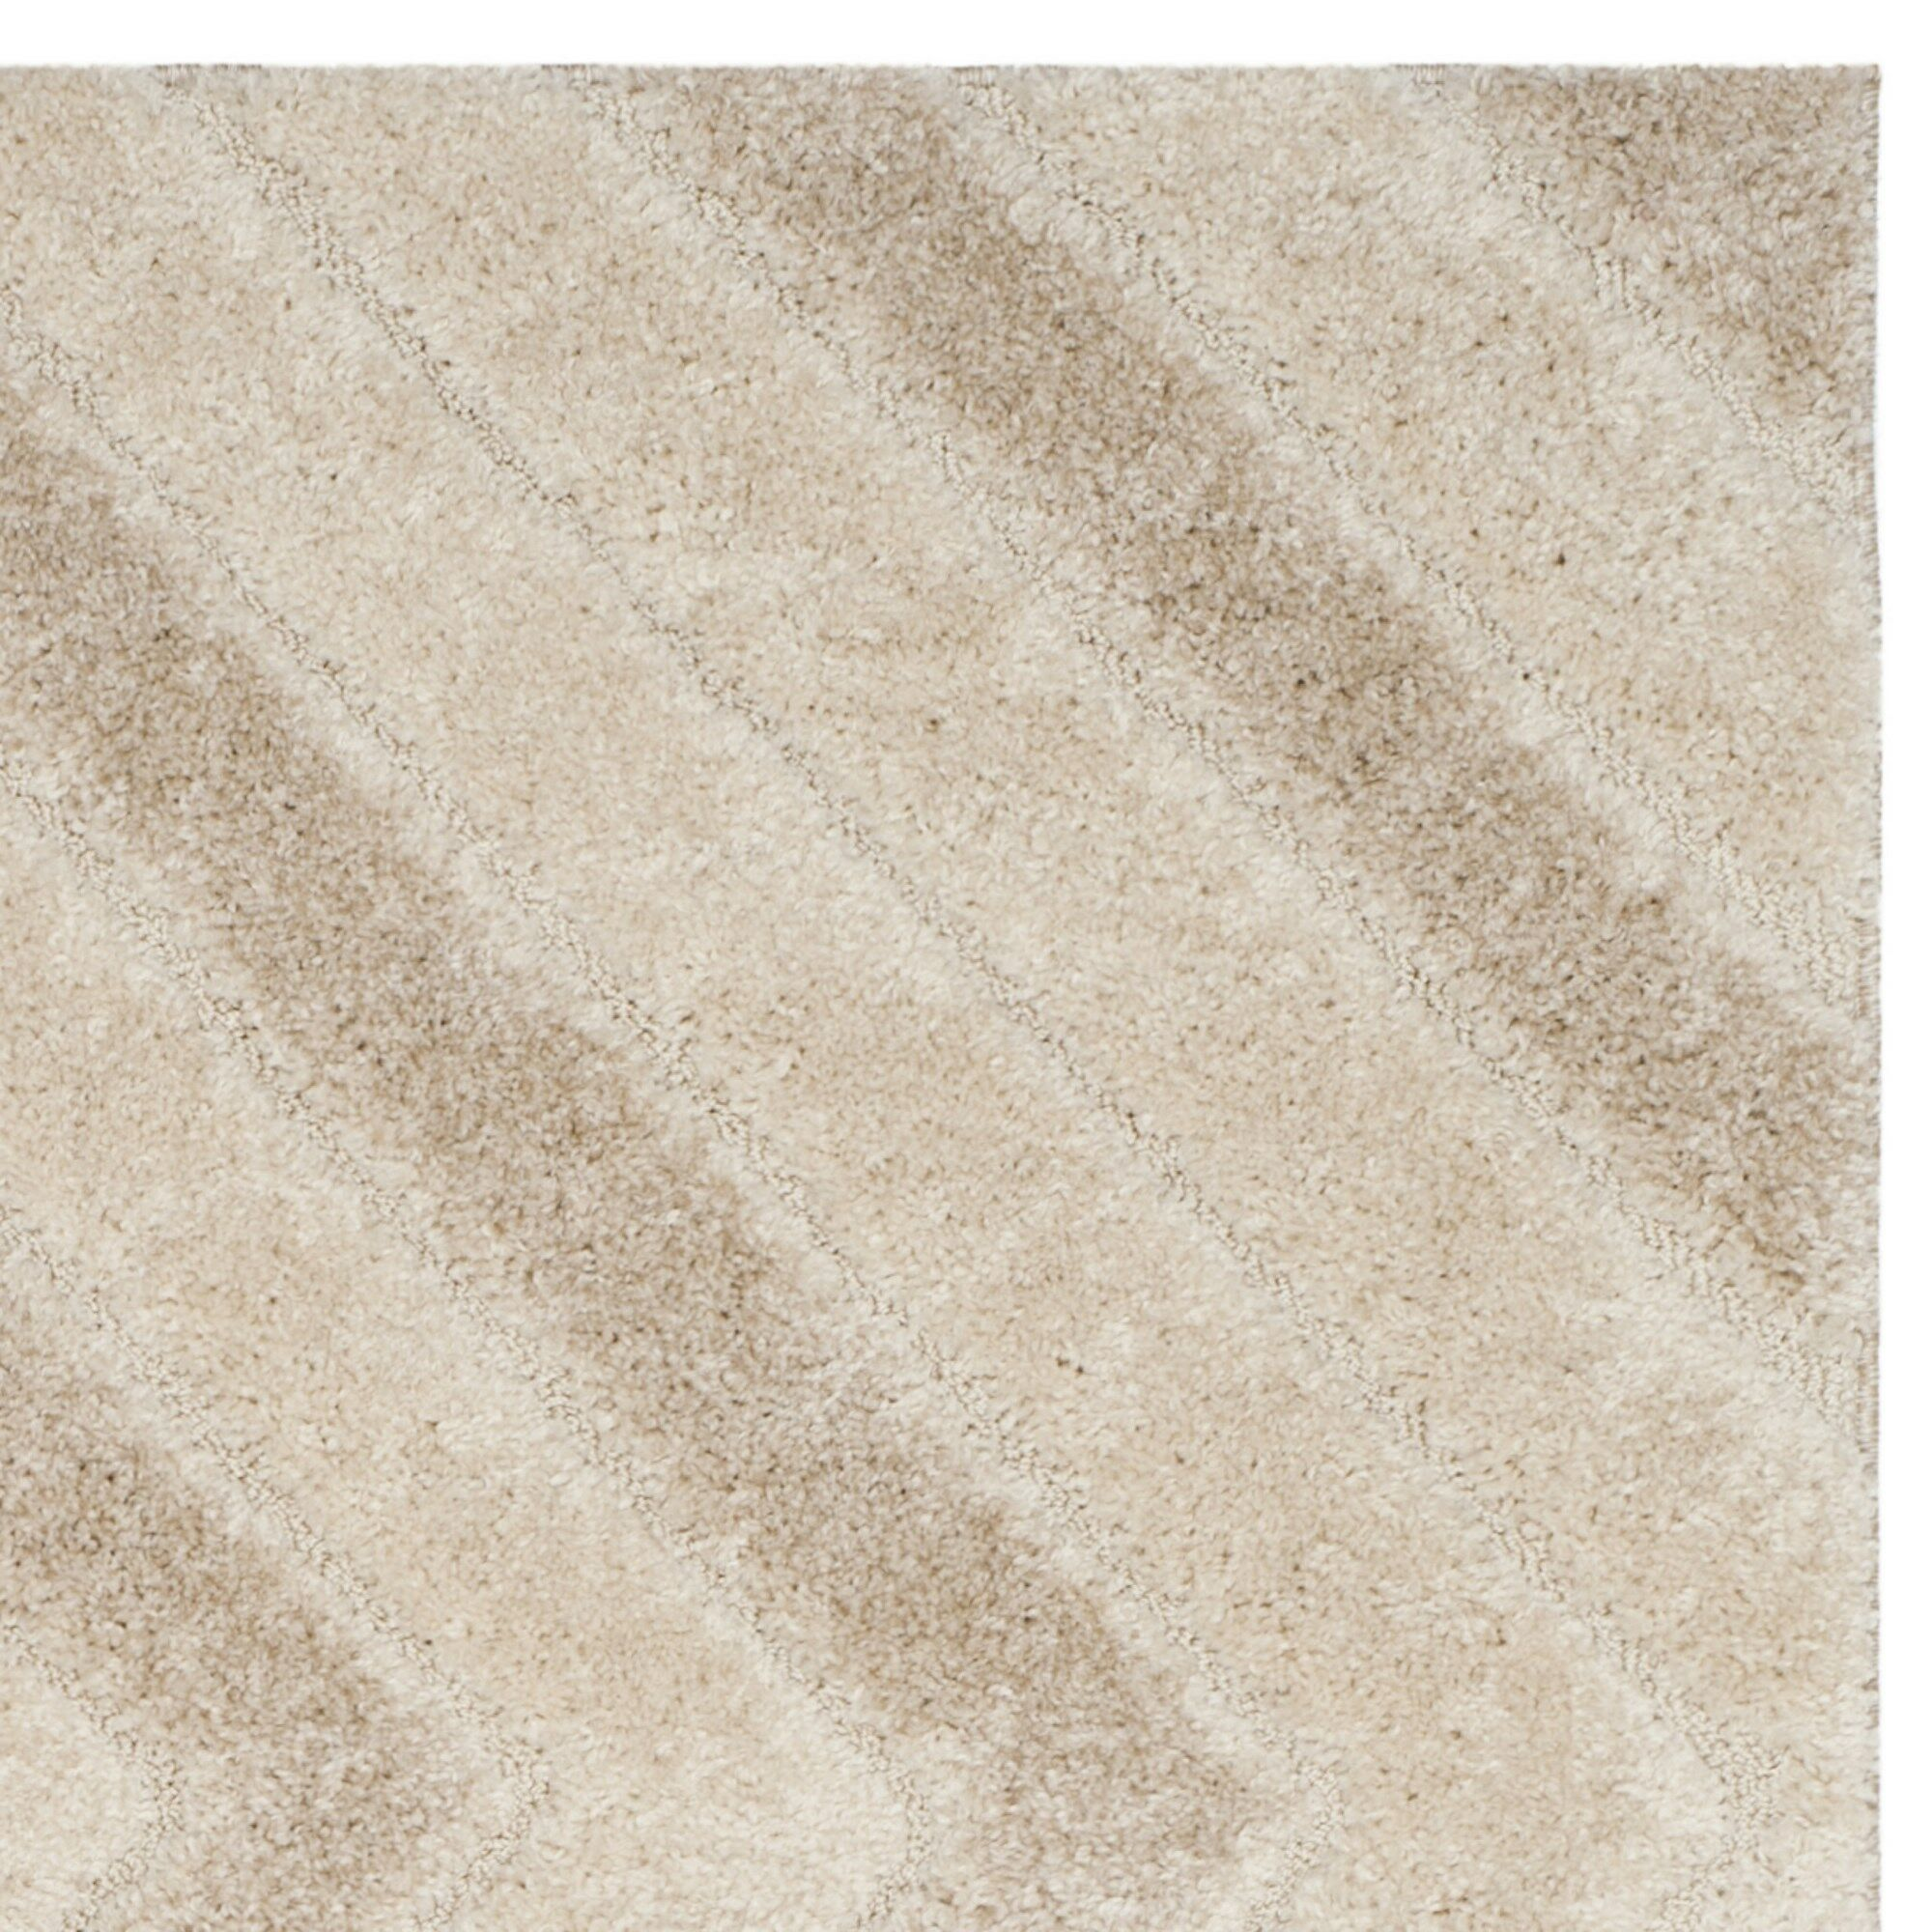 Wideman Beige Area Rug Rug Size: Rectangle 9' x 12'